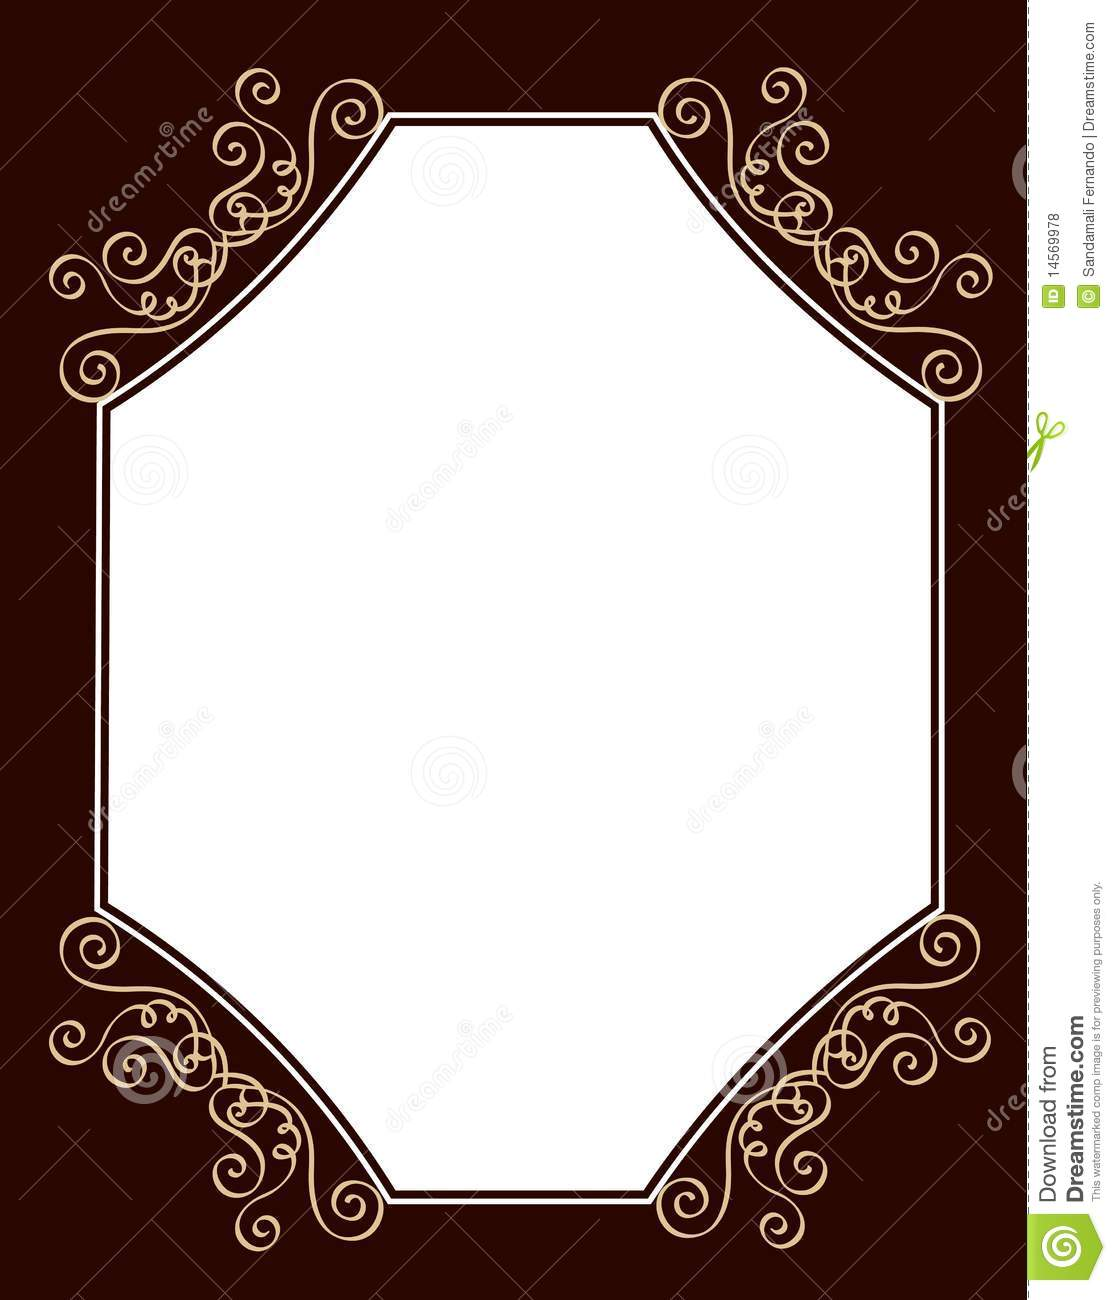 Wedding Invitation Template Stock Vector - Illustration of backdrop ...